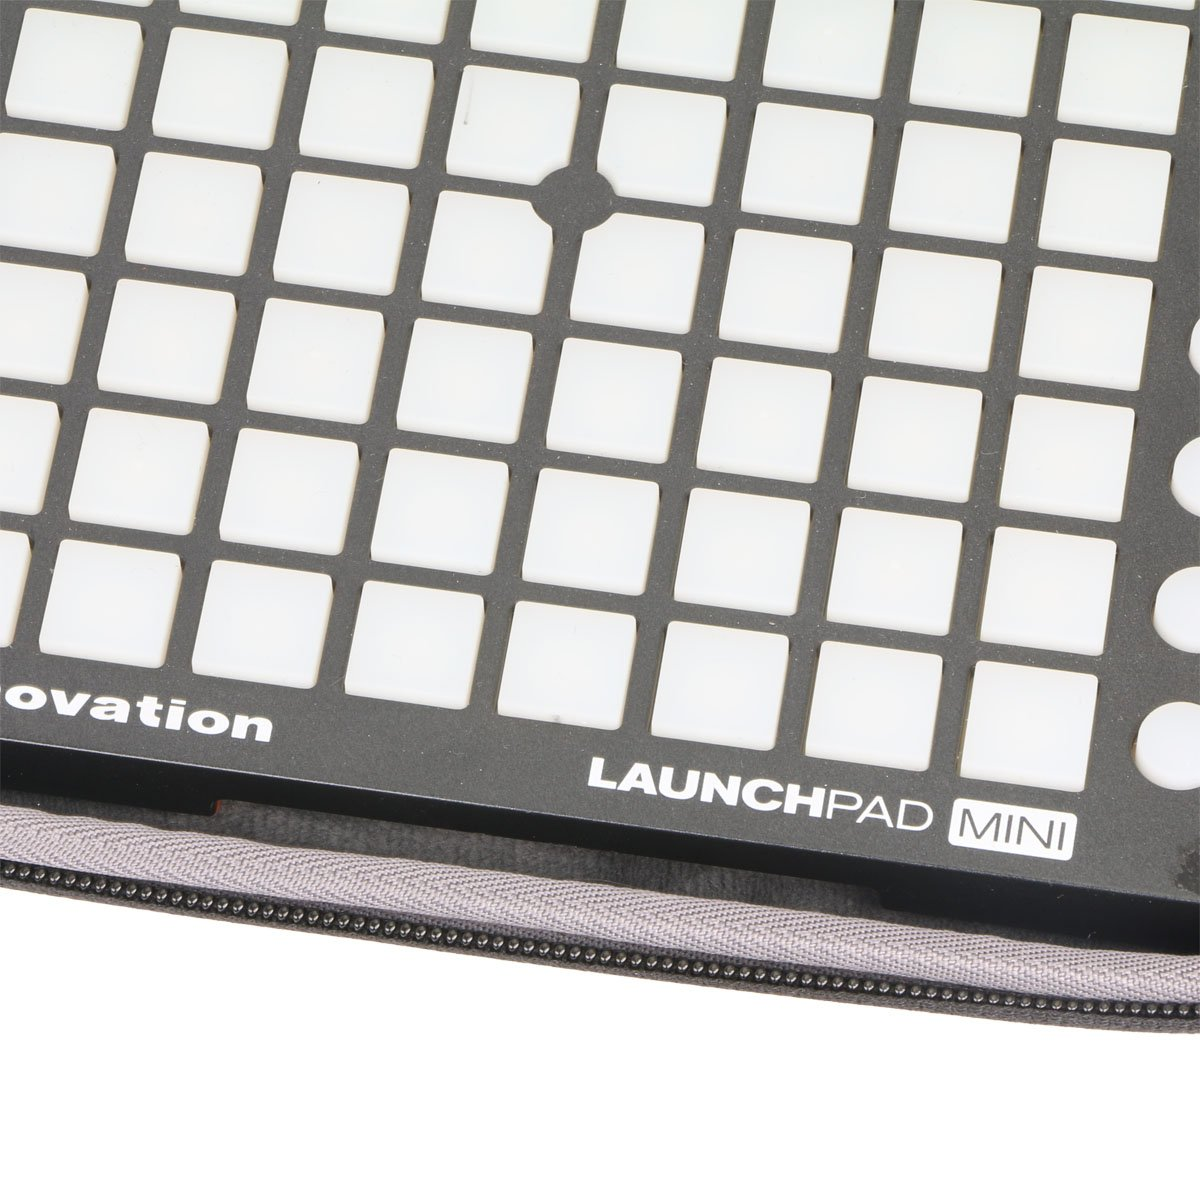 Hard Travel Case for Novation MK2 Launchpad Mini Compact USB Grid Controller Ableton Live by co2CREA